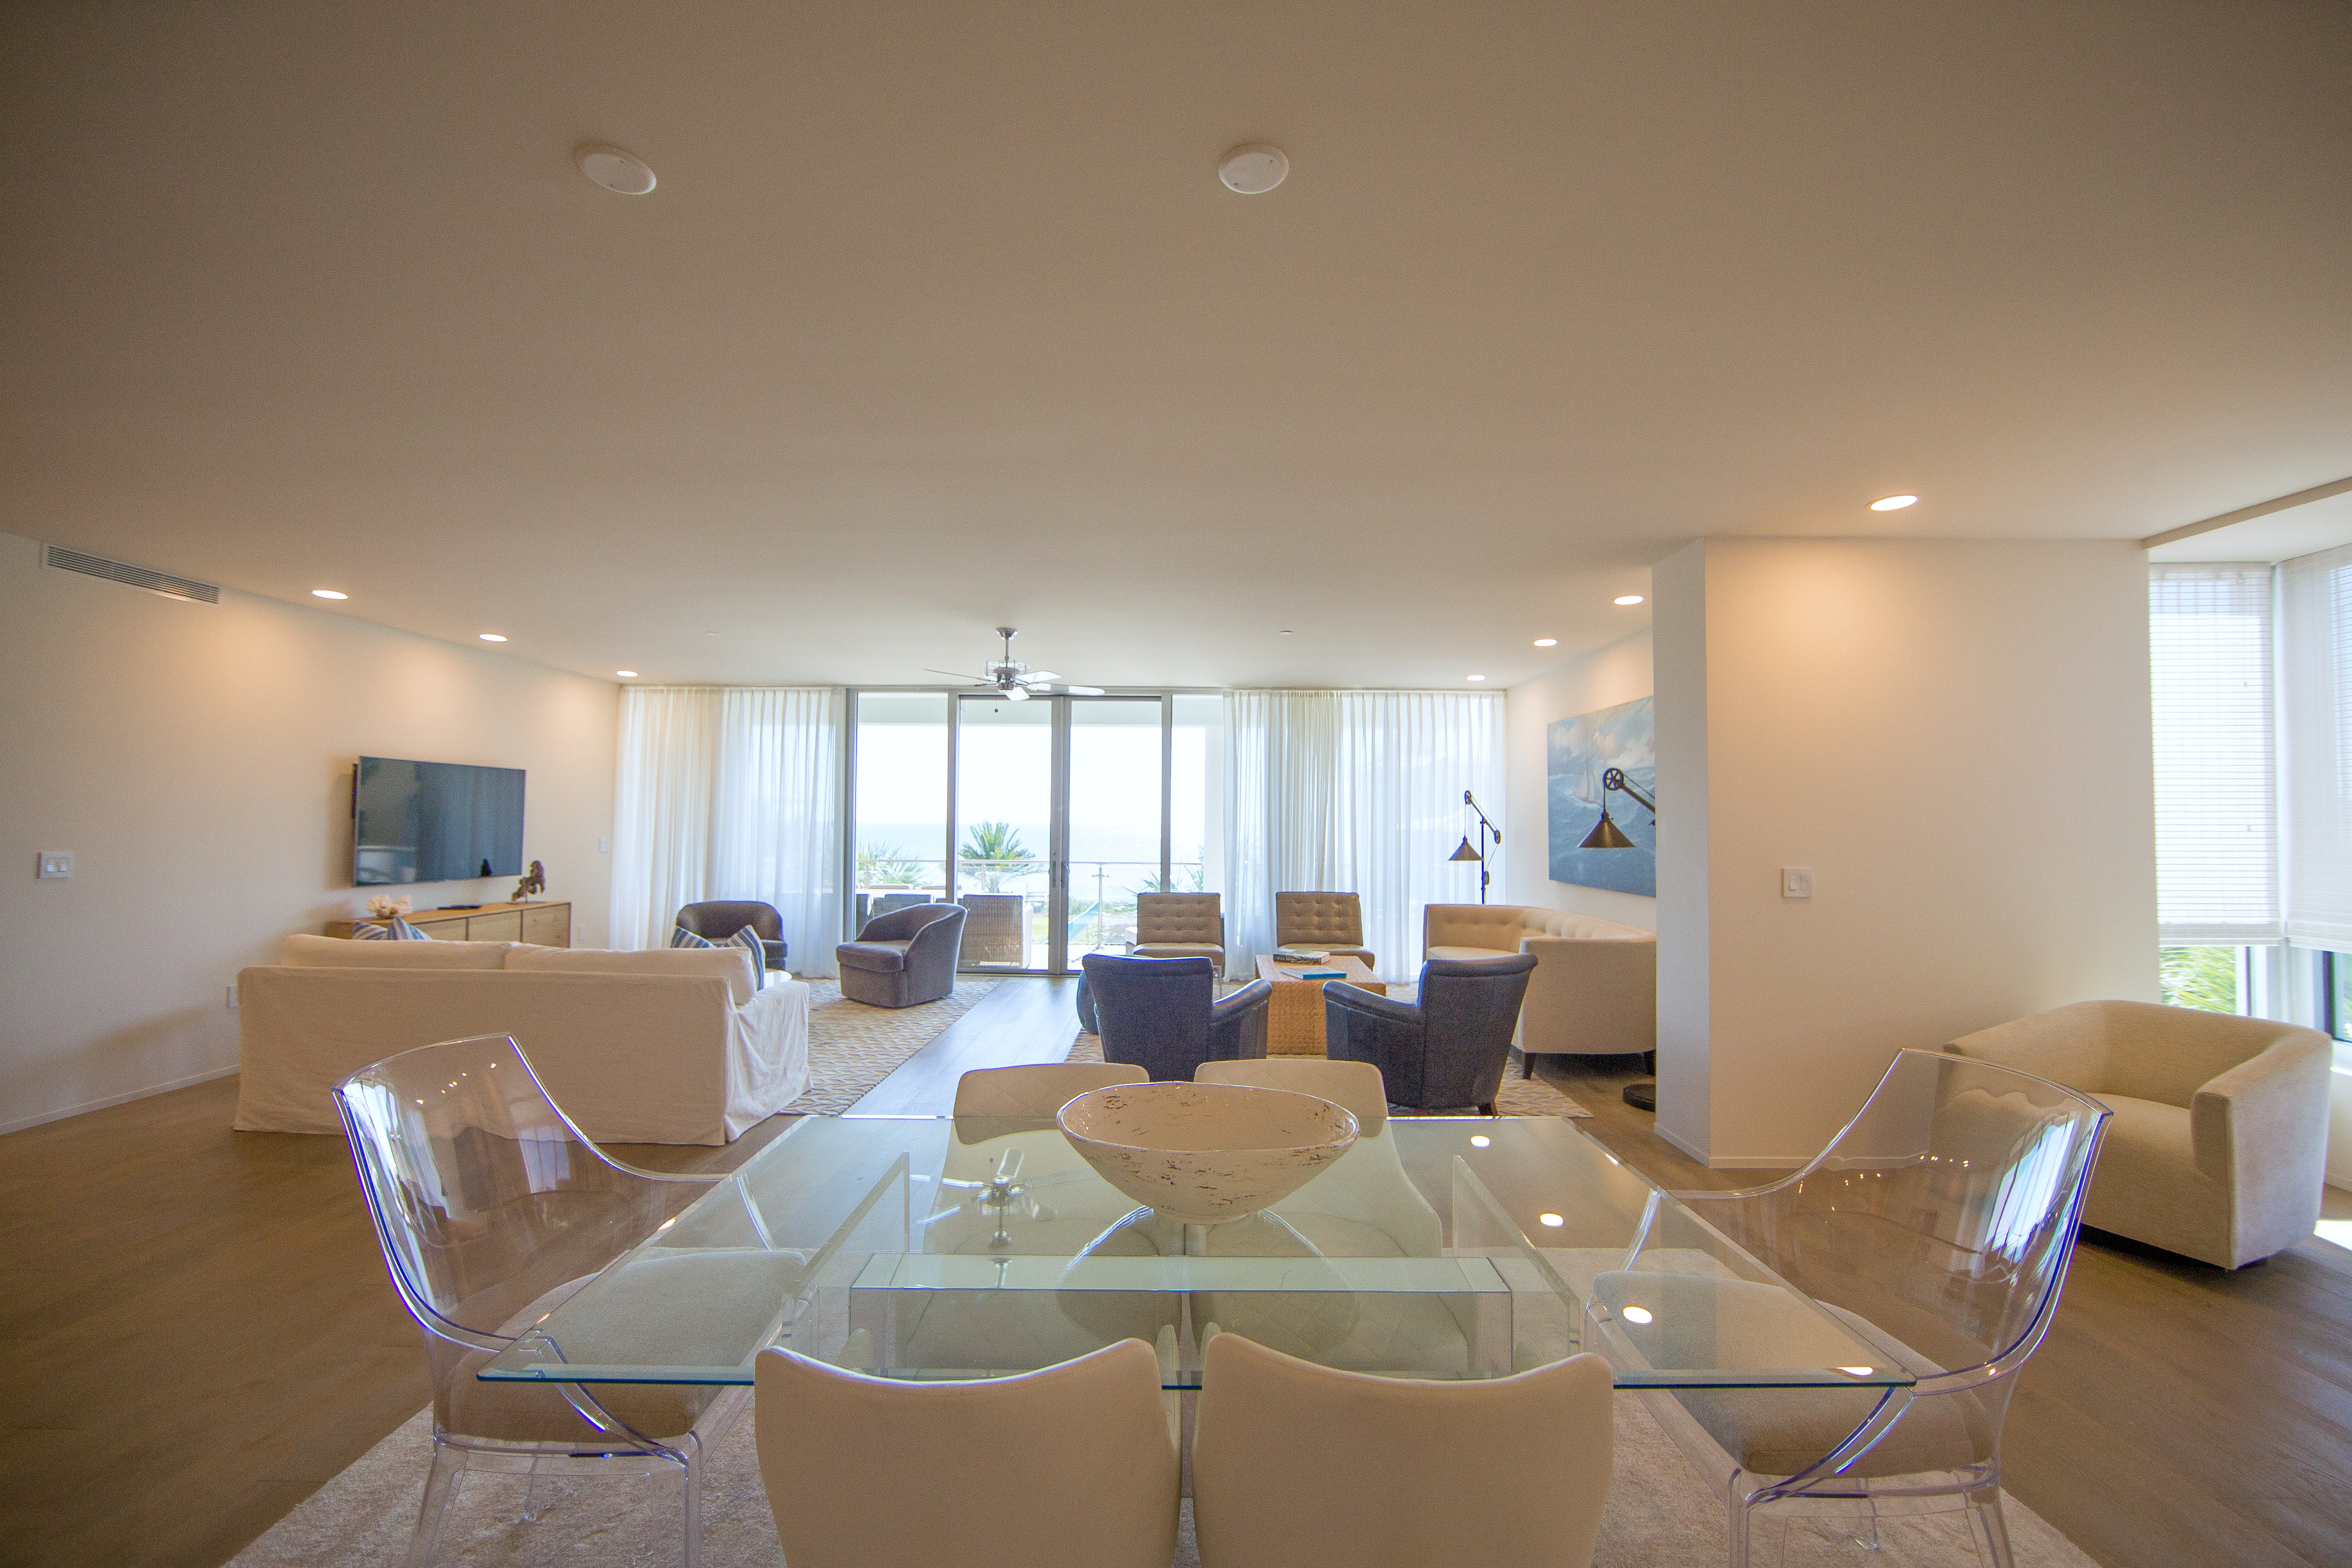 Beautiful dining table located in between the kitchen and living areas